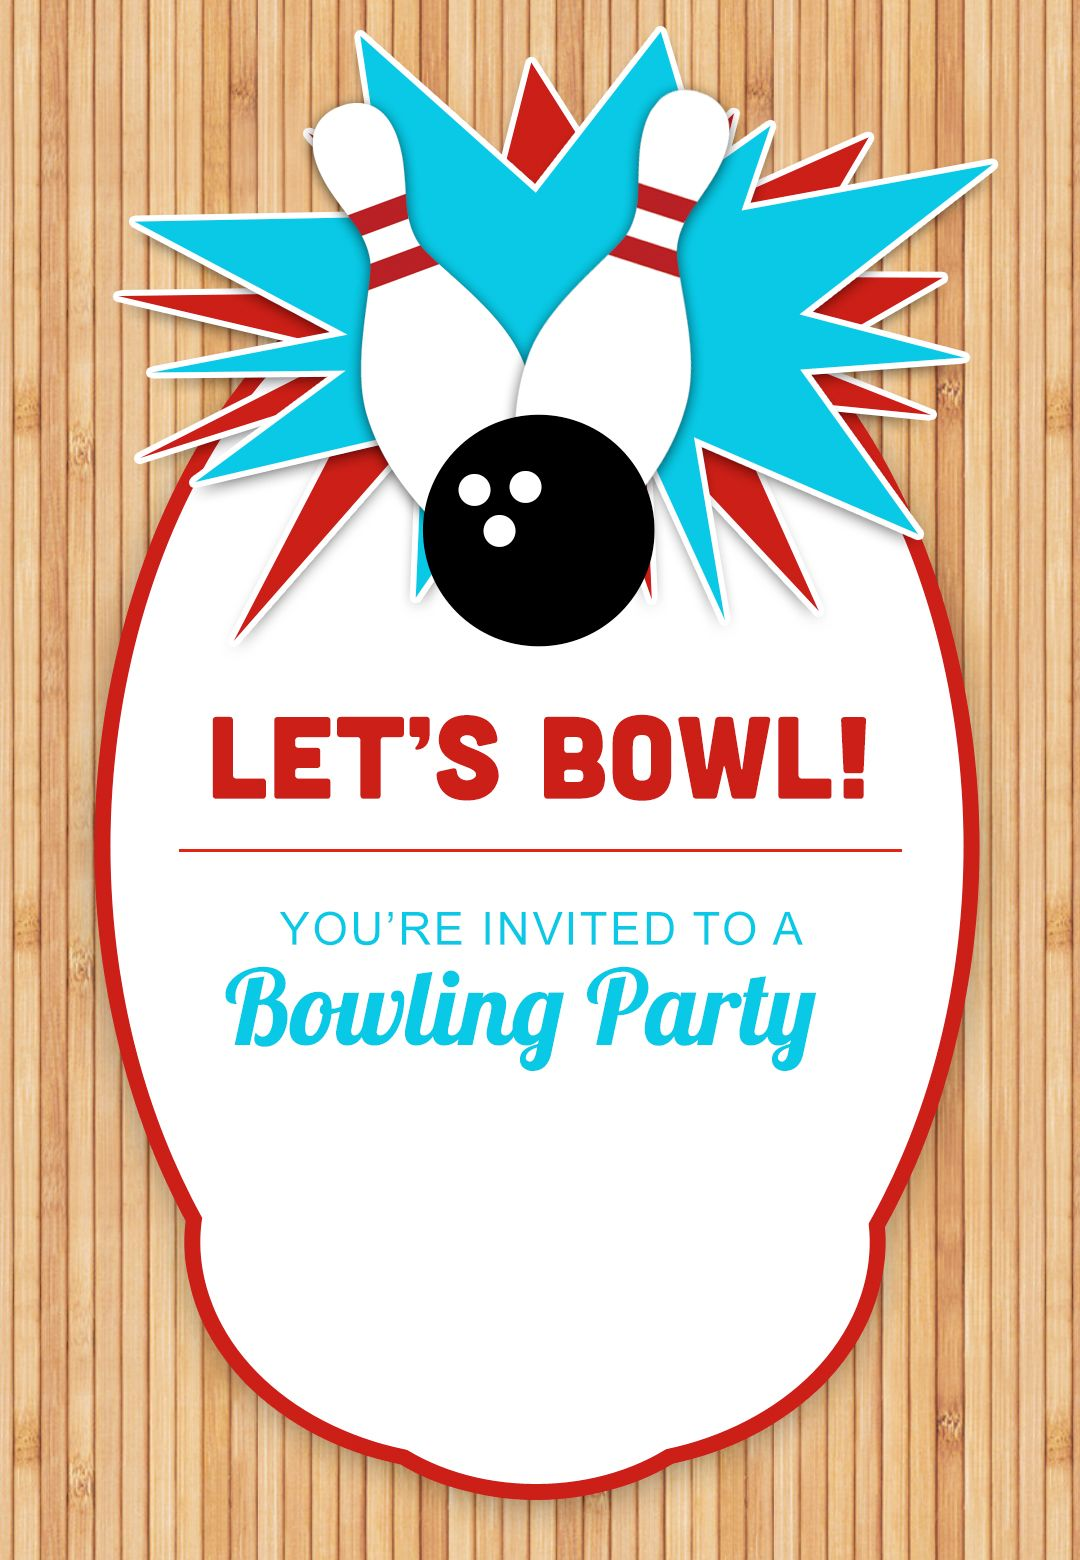 Bowling Party - Free Printable Birthday Invitation Template ...